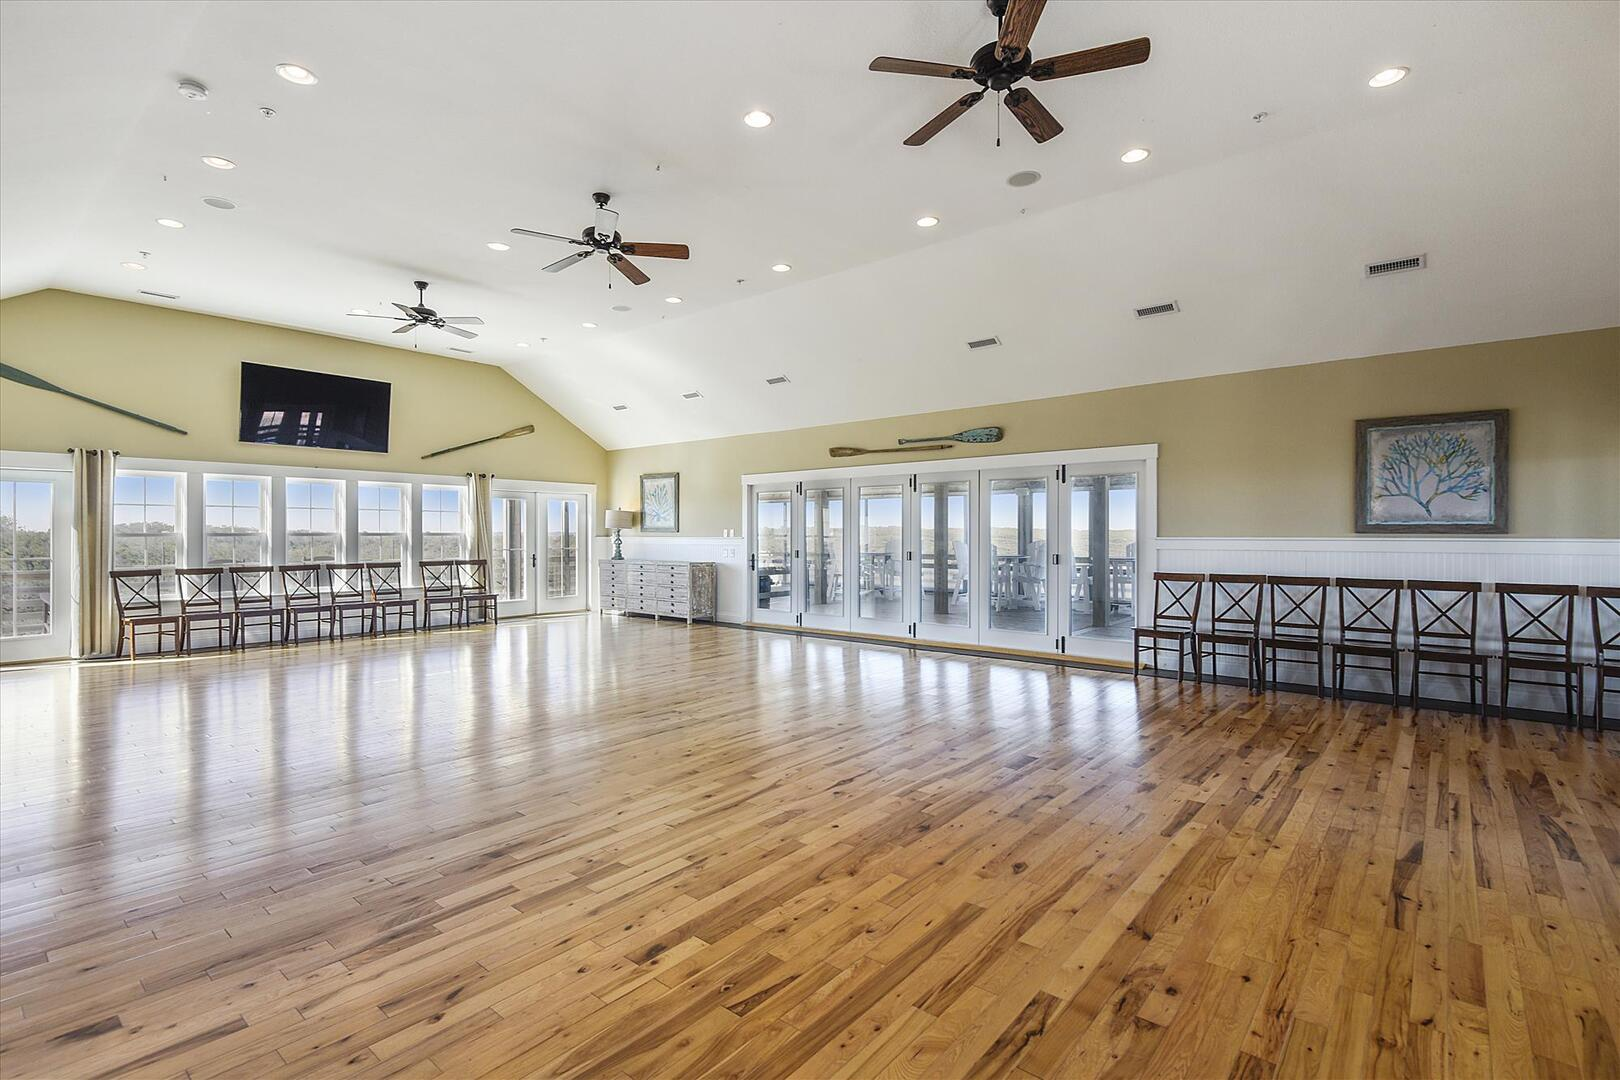 Upper Level,Ballroom/Dining Area,